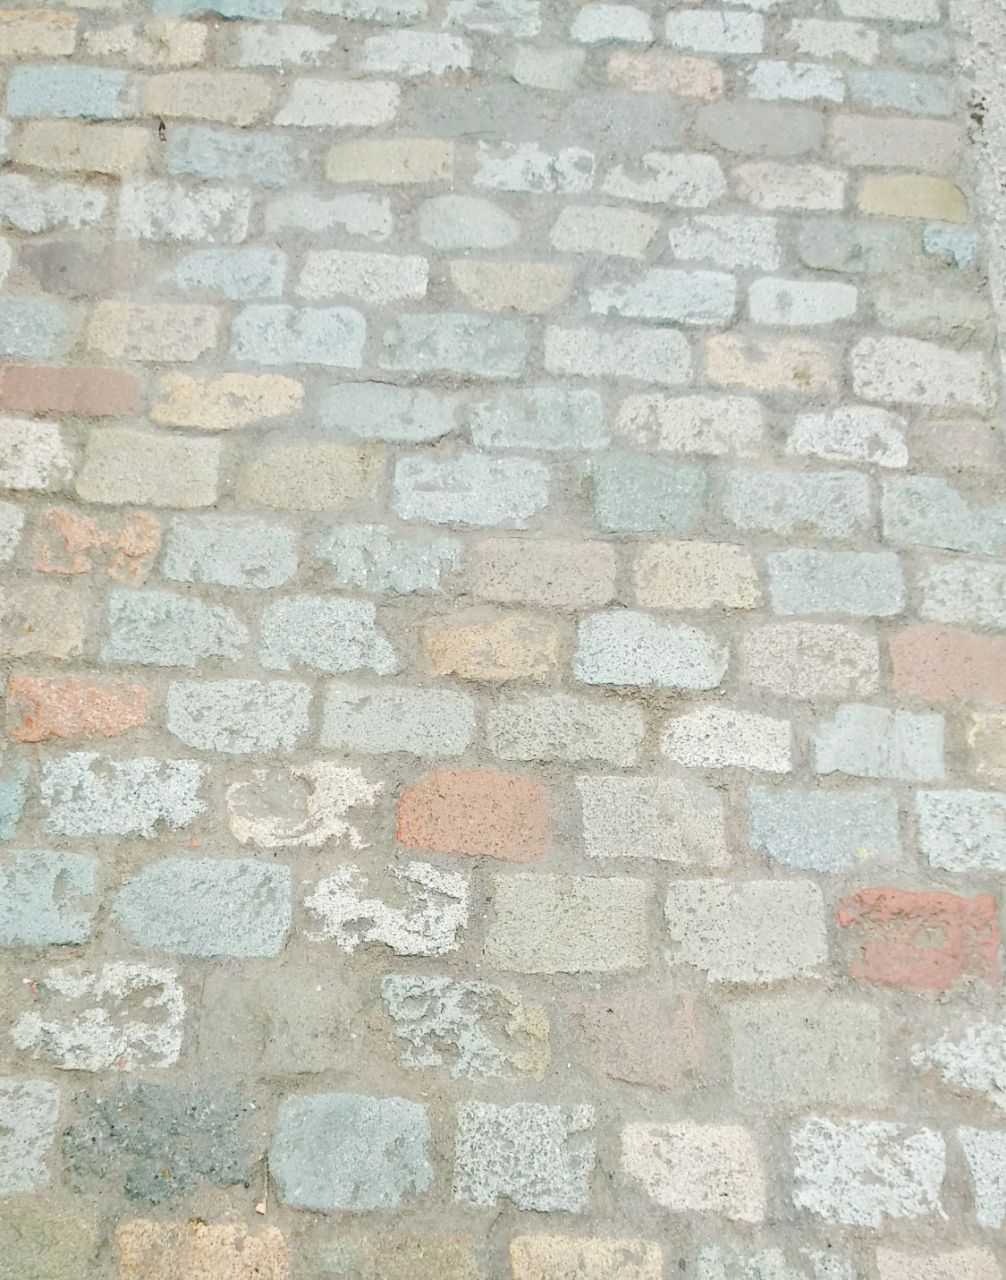 colourful cobblestones